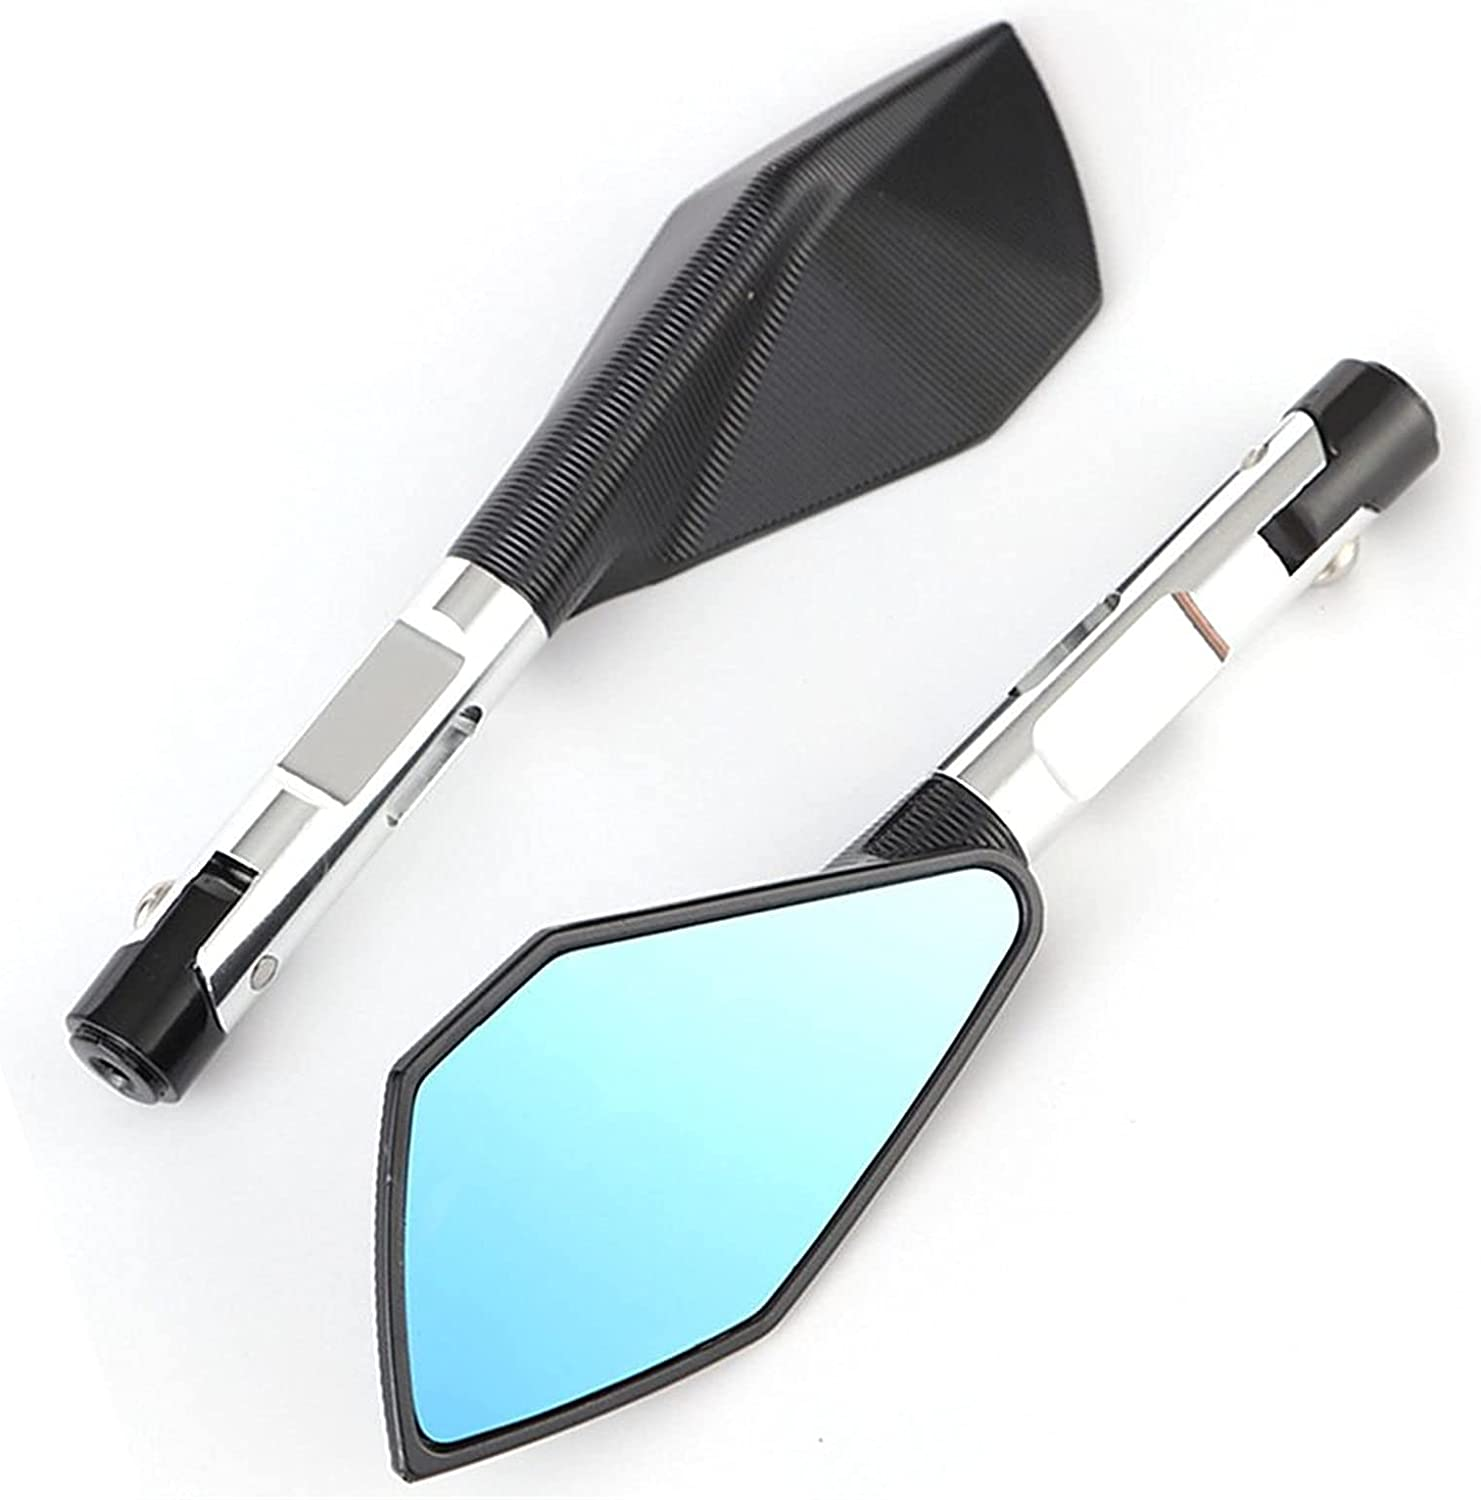 ALUNVA Motorcycle Max 63% OFF CNC Aluminum Rear Mirrors Side Rearview M View Under blast sales